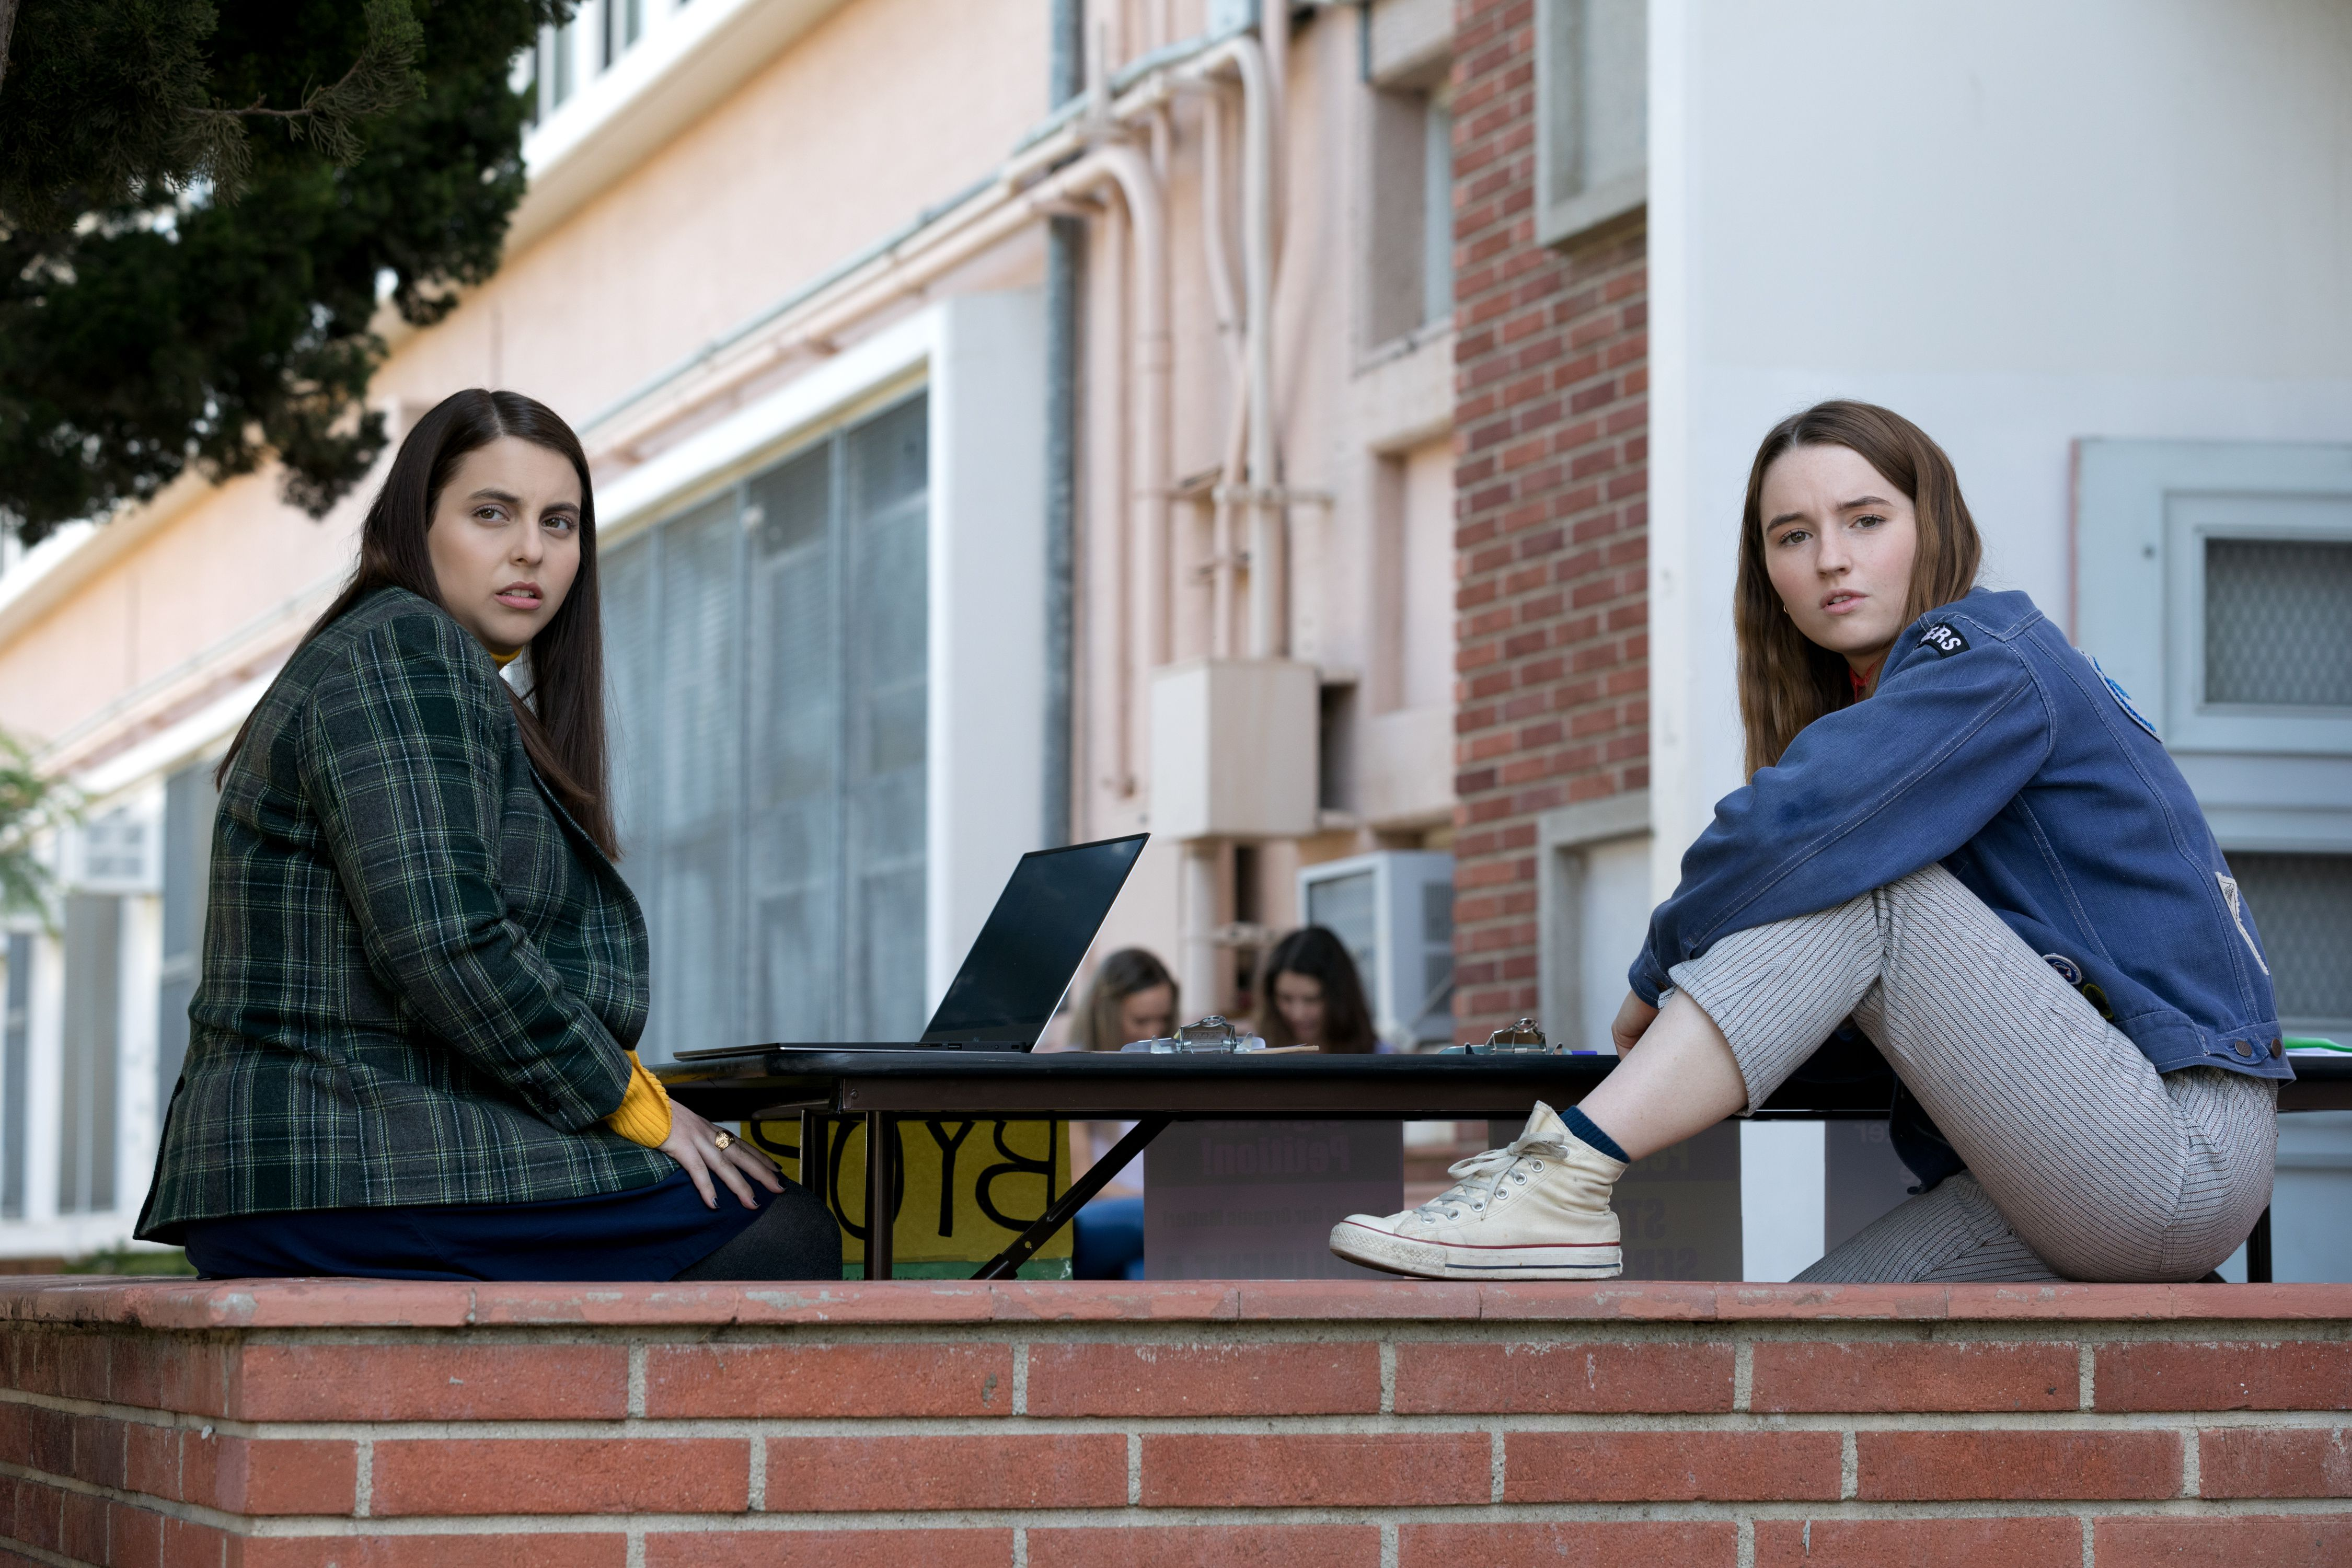 Editorial use only. No book cover usage.Mandatory Credit: Photo by F Duhamel/Annapurna/MGM/Kobal/Shutterstock (10238723u)Beanie Feldstein as Molly and Kaitlyn Dever as Amy'Booksmart' Film - 2019On the eve of their high school graduation, two academic superstars and best friends realize they should have worked less and played more. Determined not to fall short of their peers, the girls try to cram four years of fun into one night.